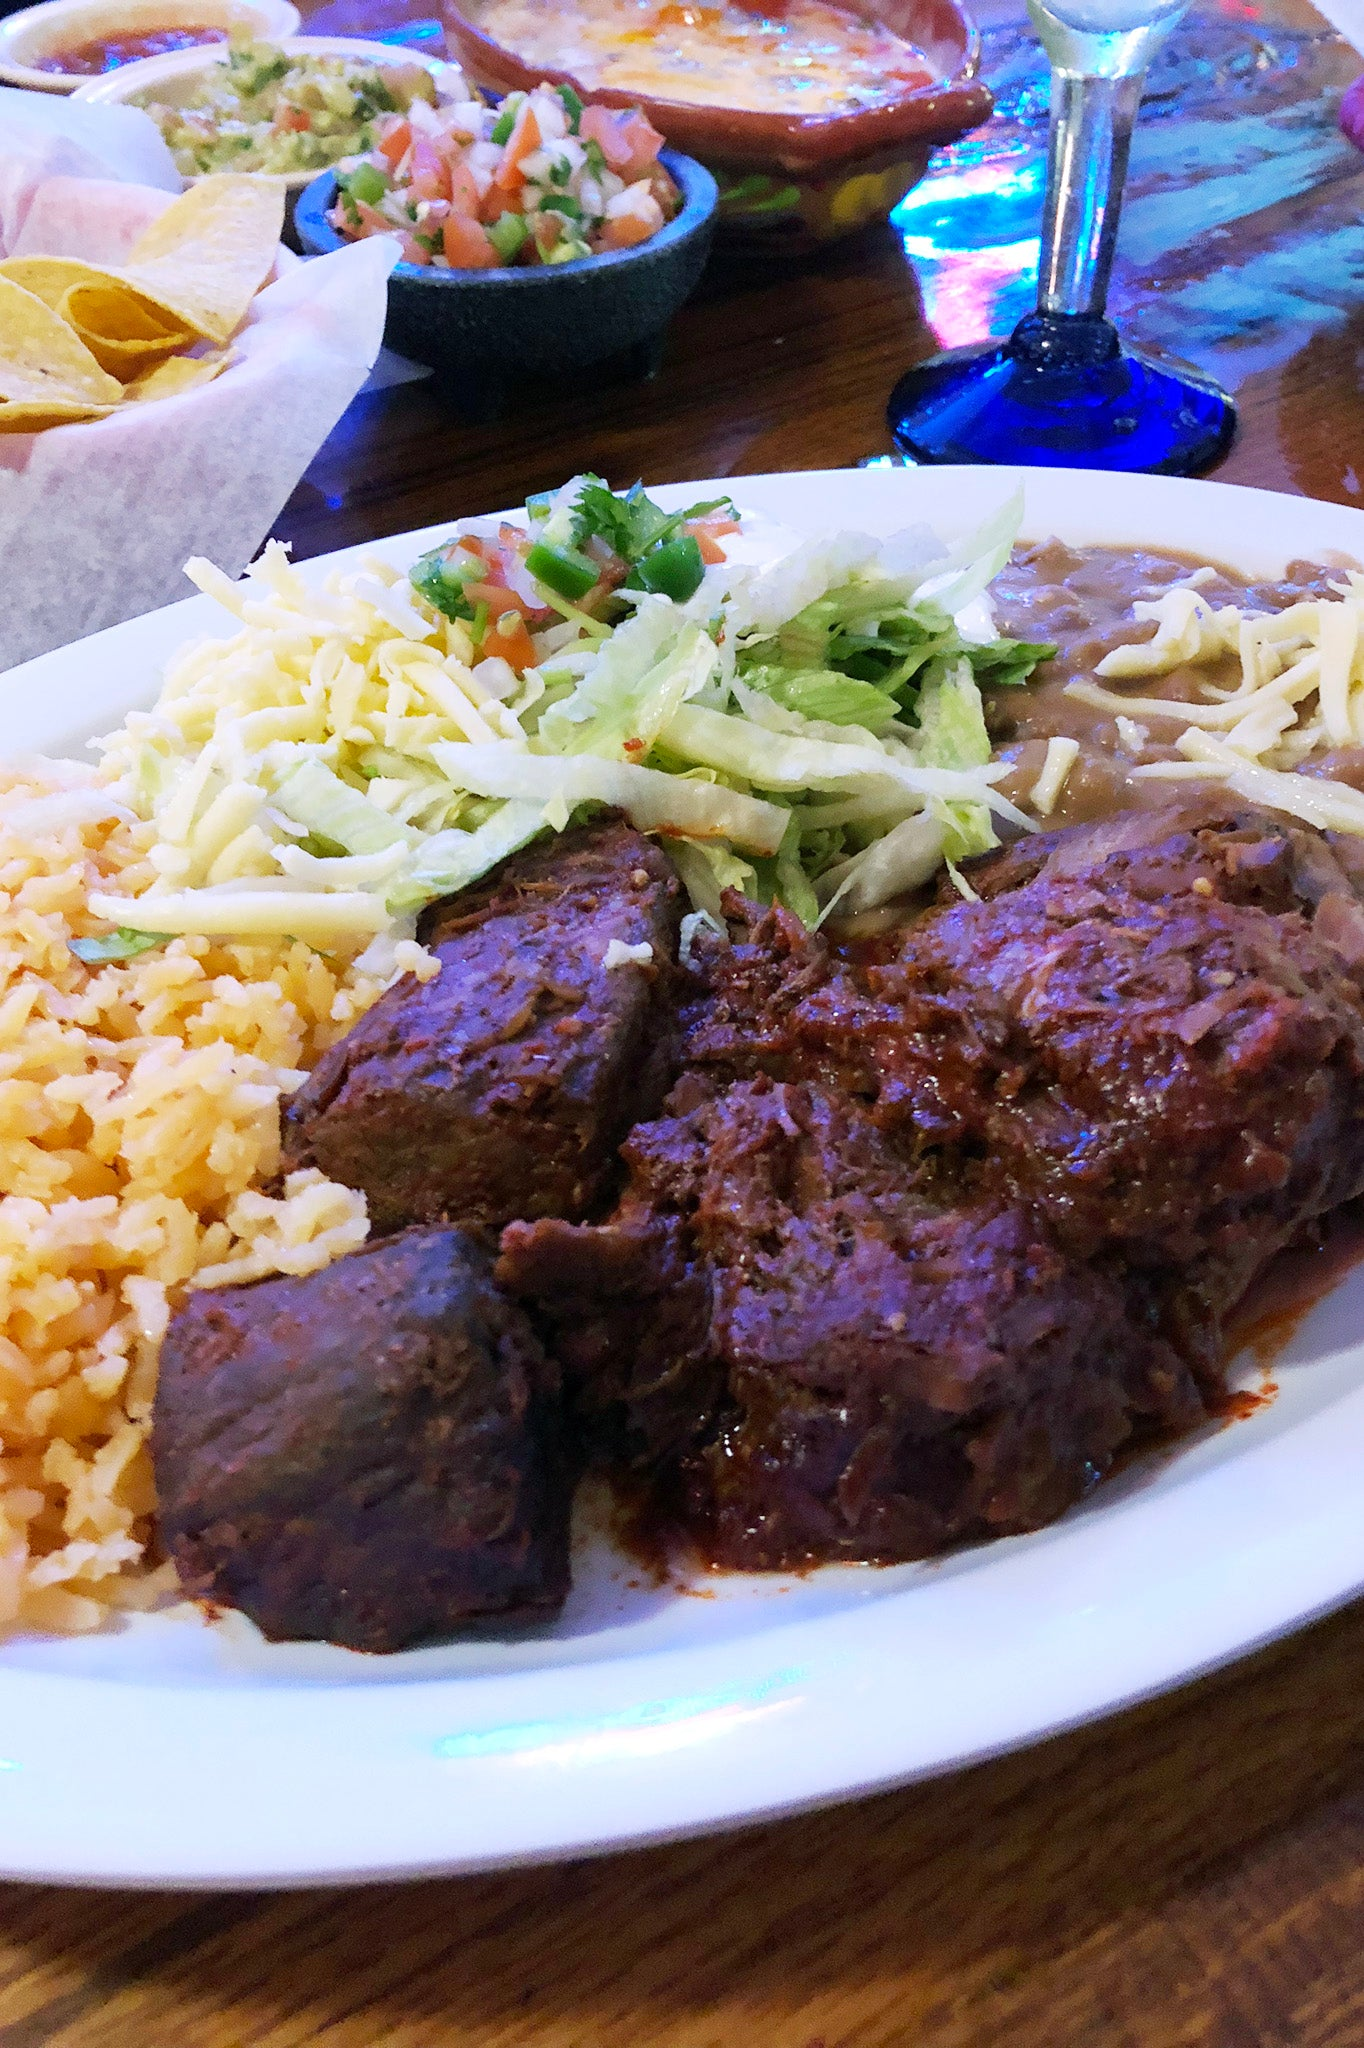 ShopMucho goes to La Herradura on Summer Ave. for lunch